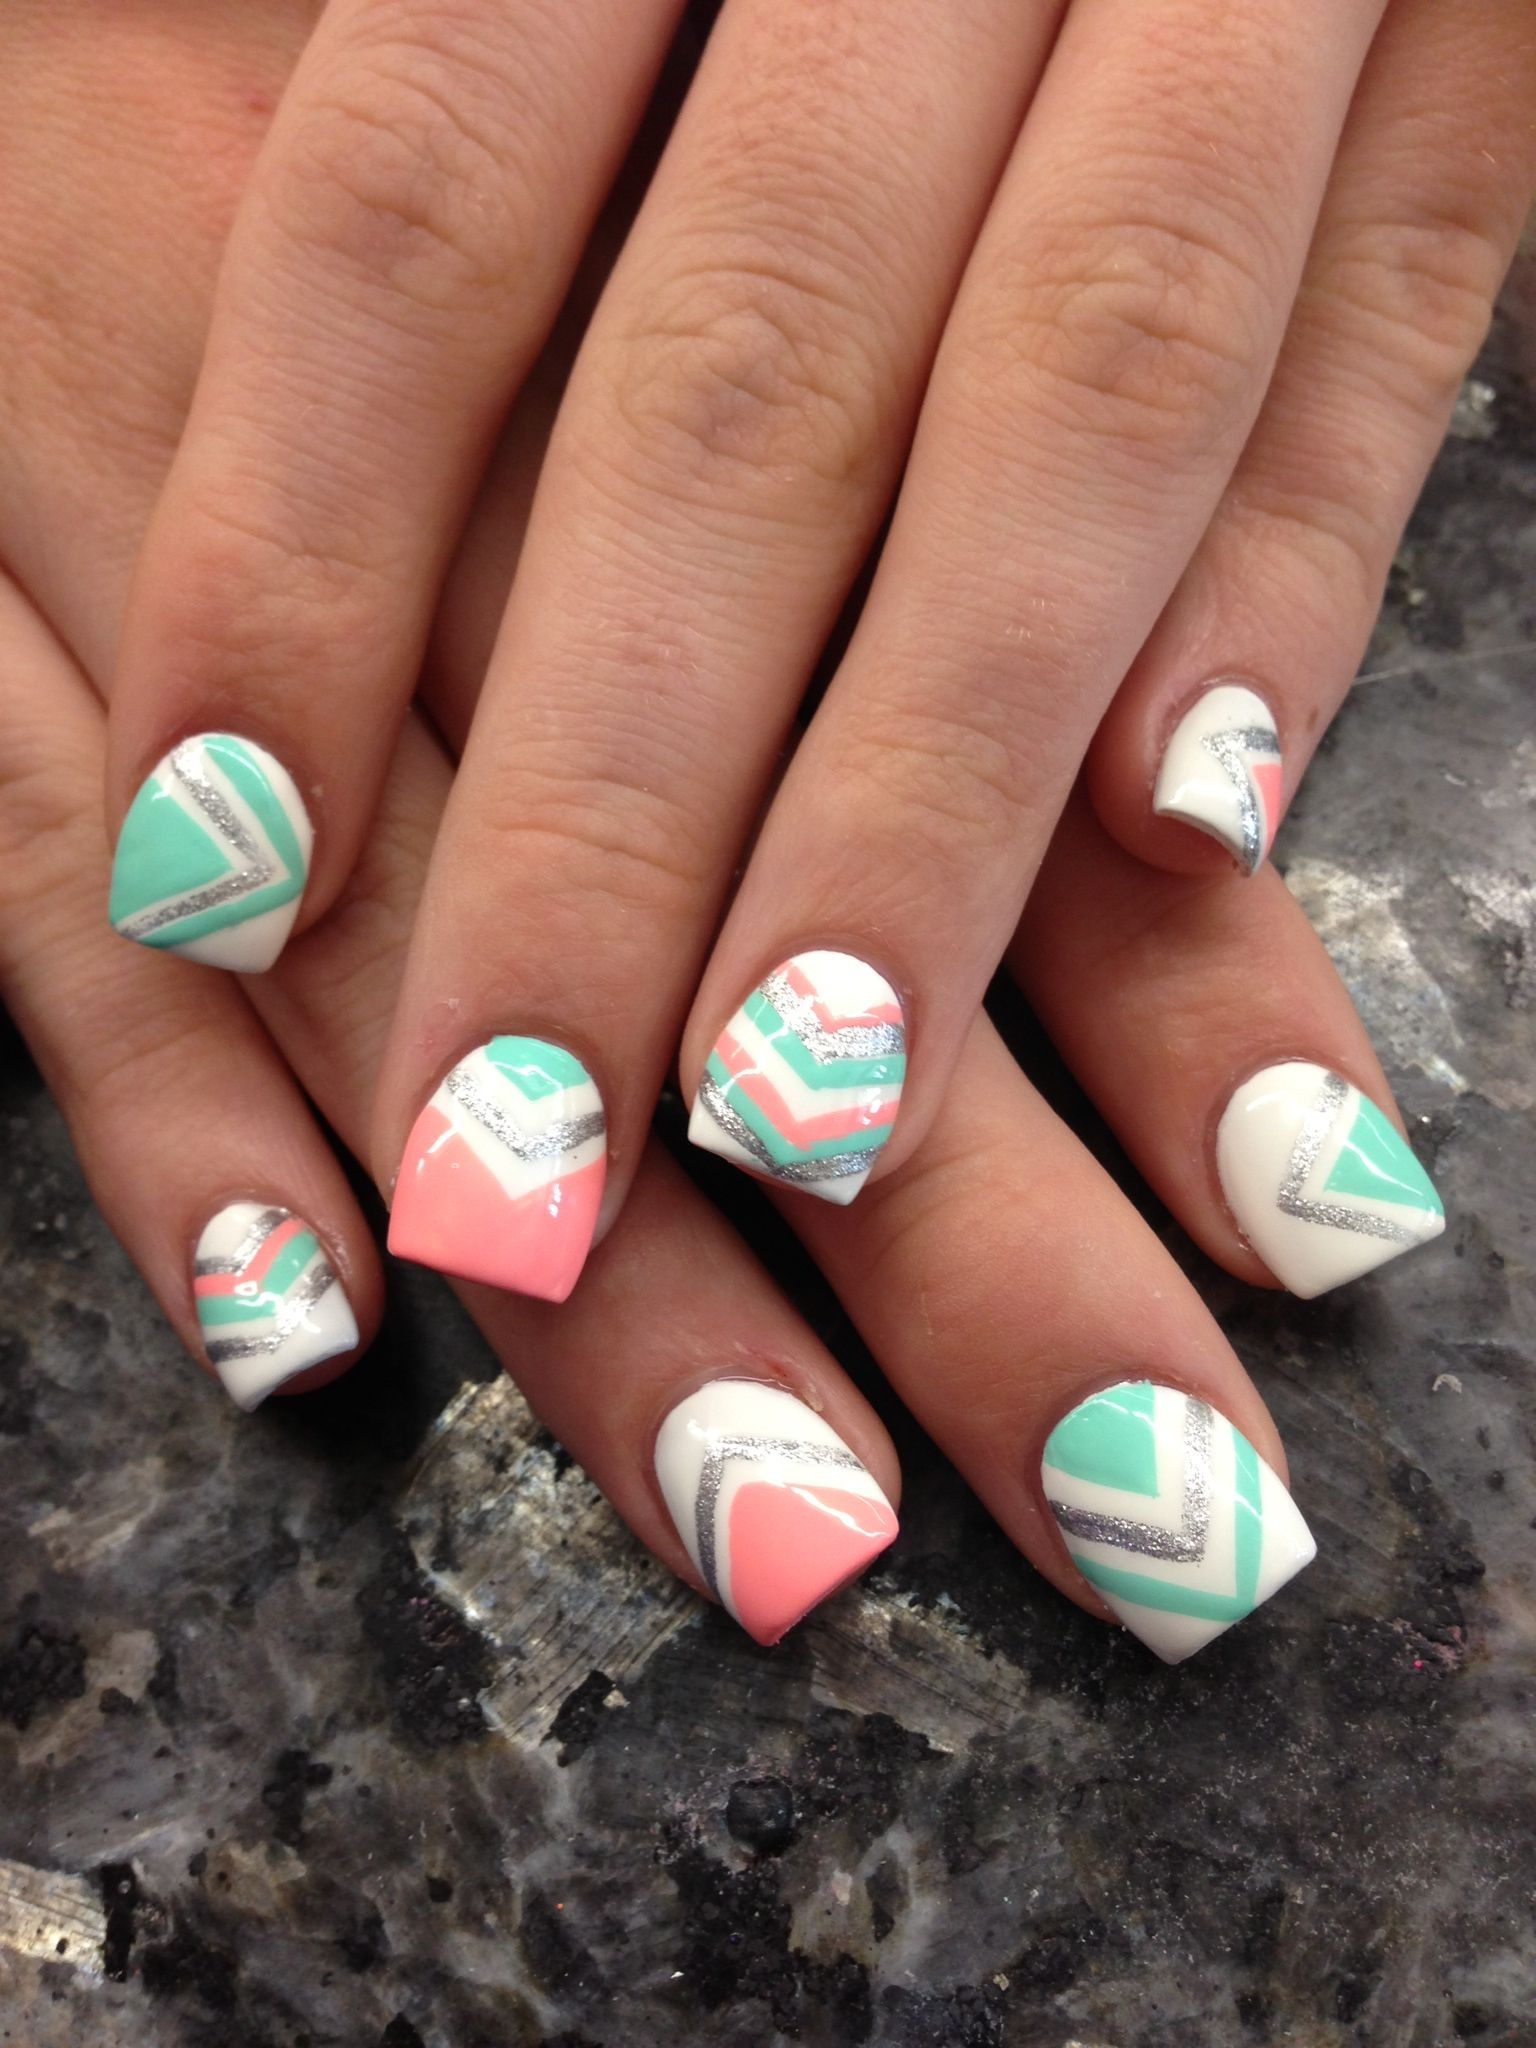 Nail Trend To Try: Chevron Nails